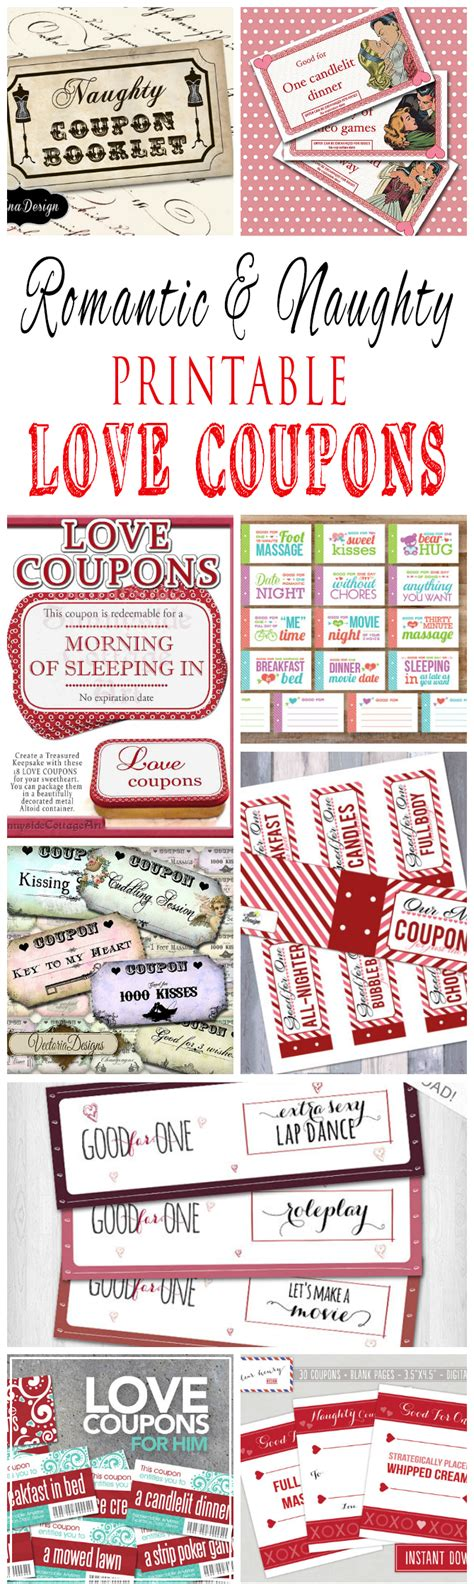 free printable s day love coupons